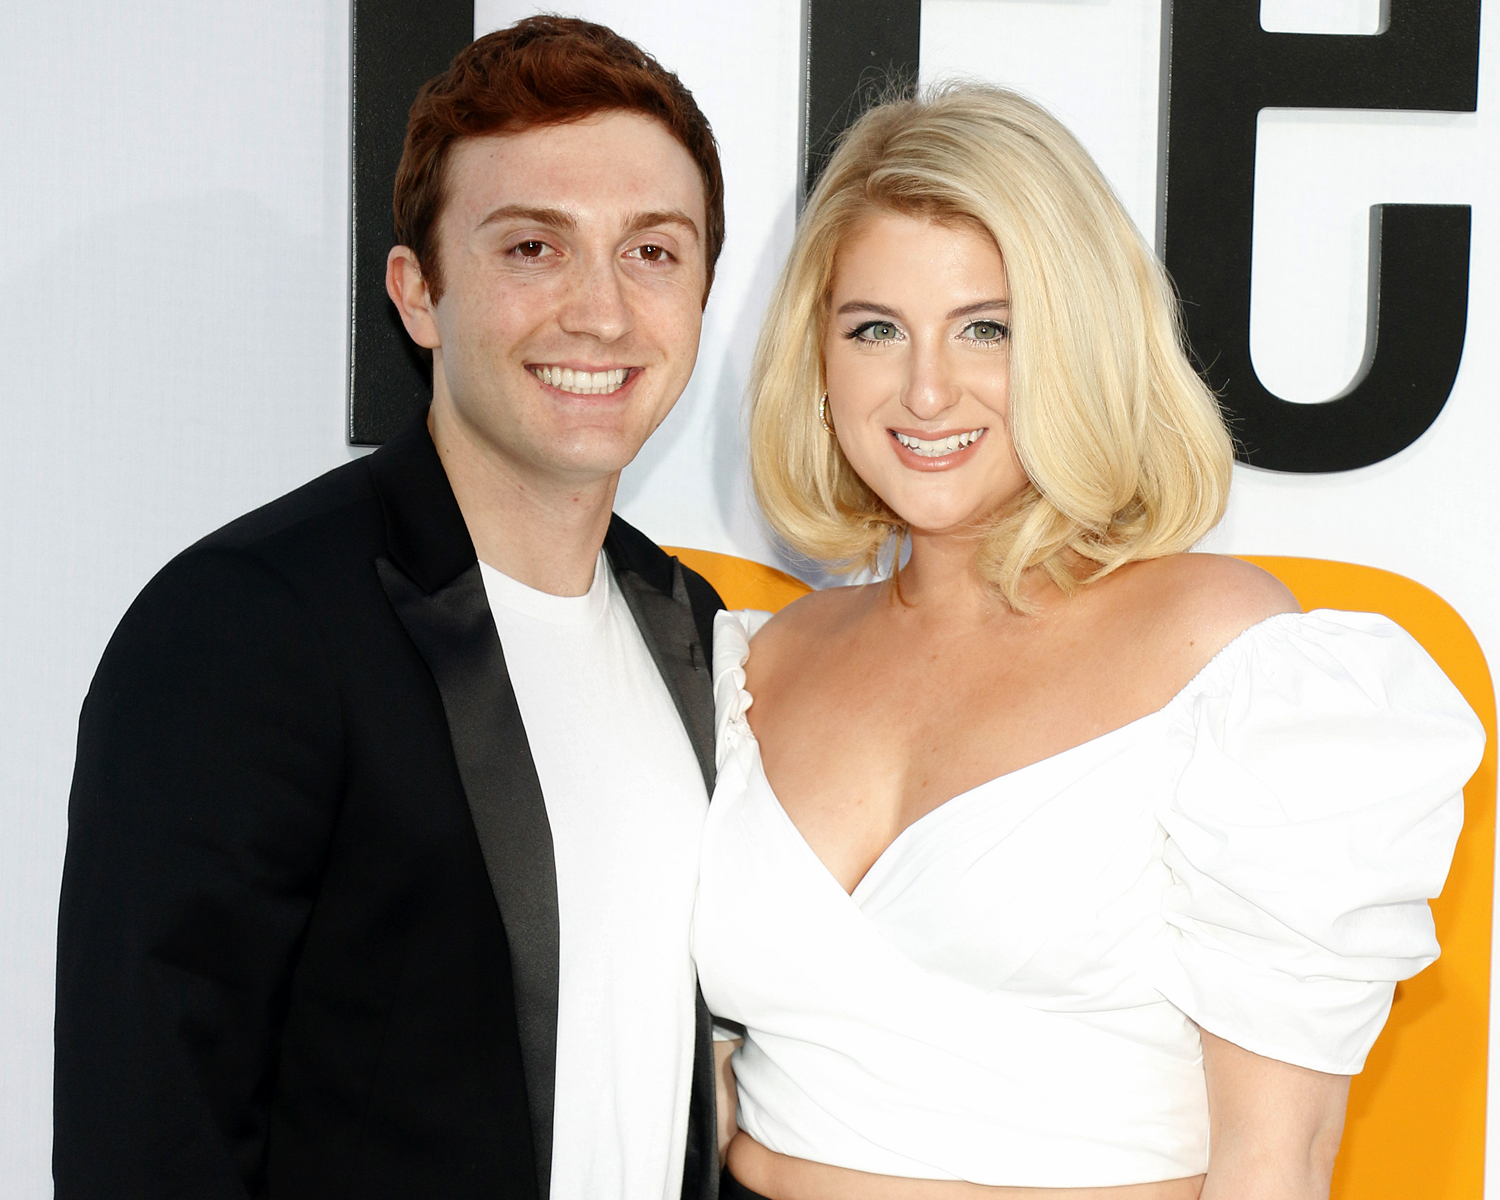 Meghan Trainor Marries Daryl Sabara In Backyard Wedding